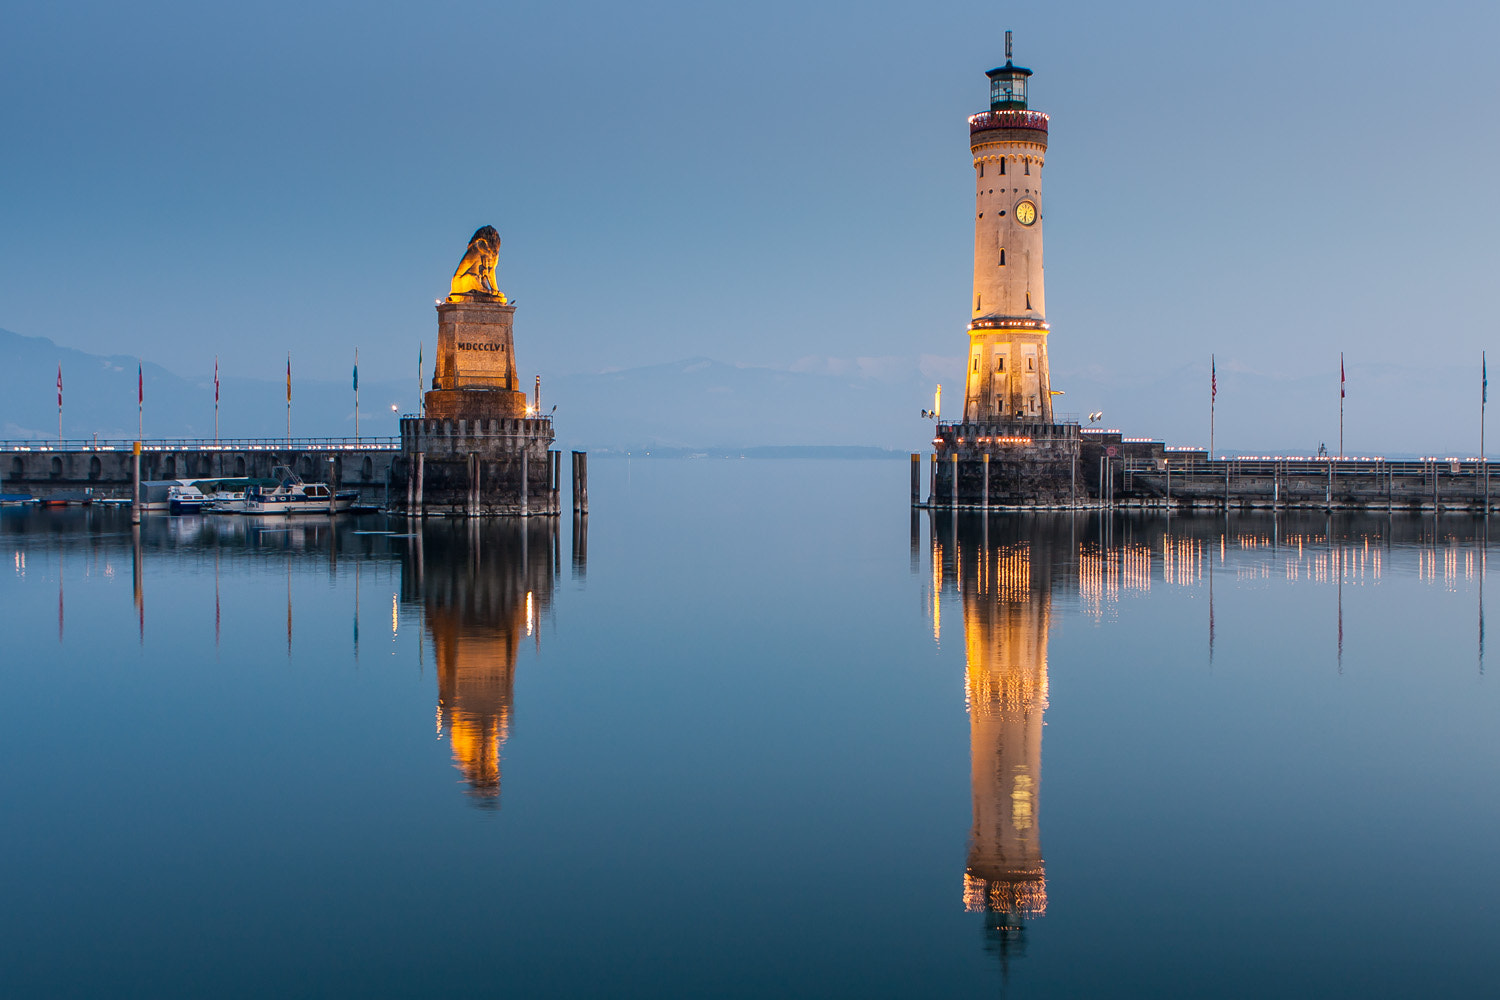 Photograph Harbour entrance of Lindau by Michael Backes on 500px